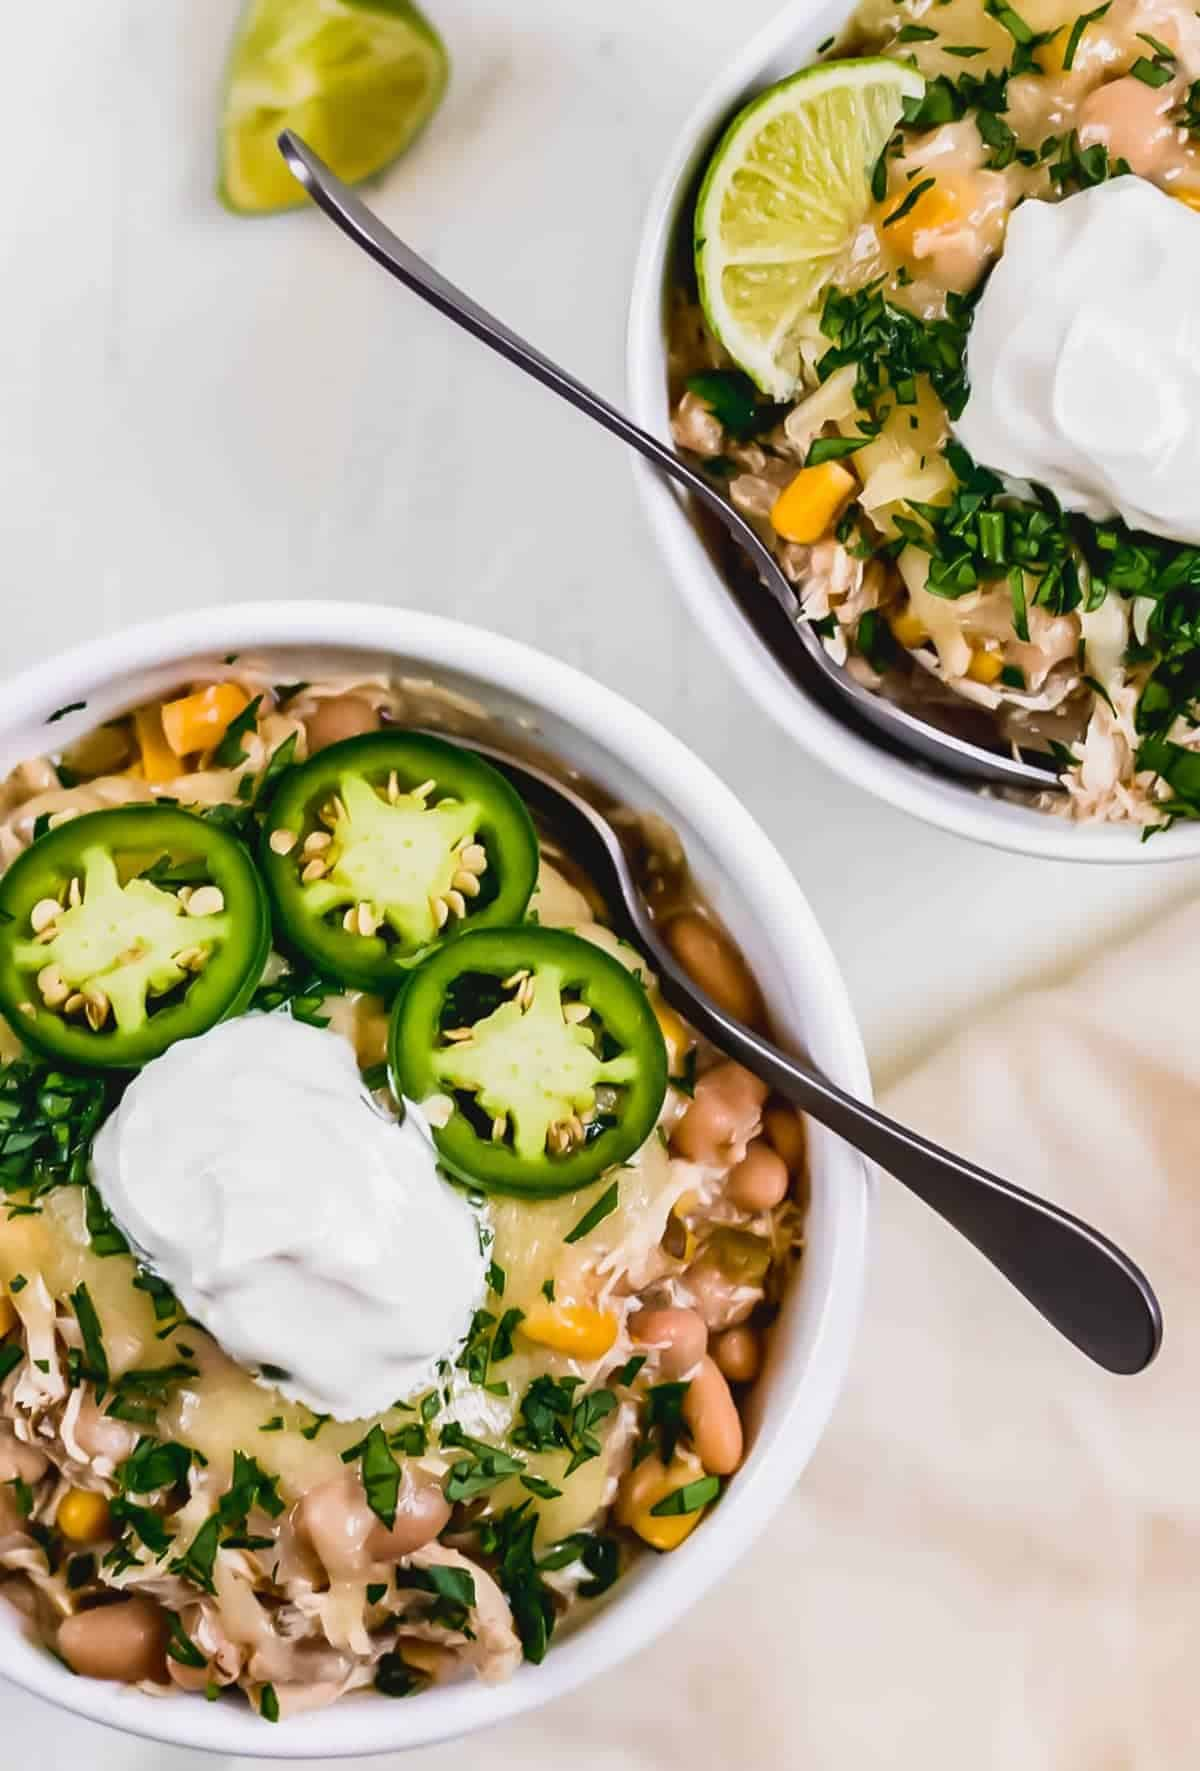 Slow cooker white chicken chili in two white bowls